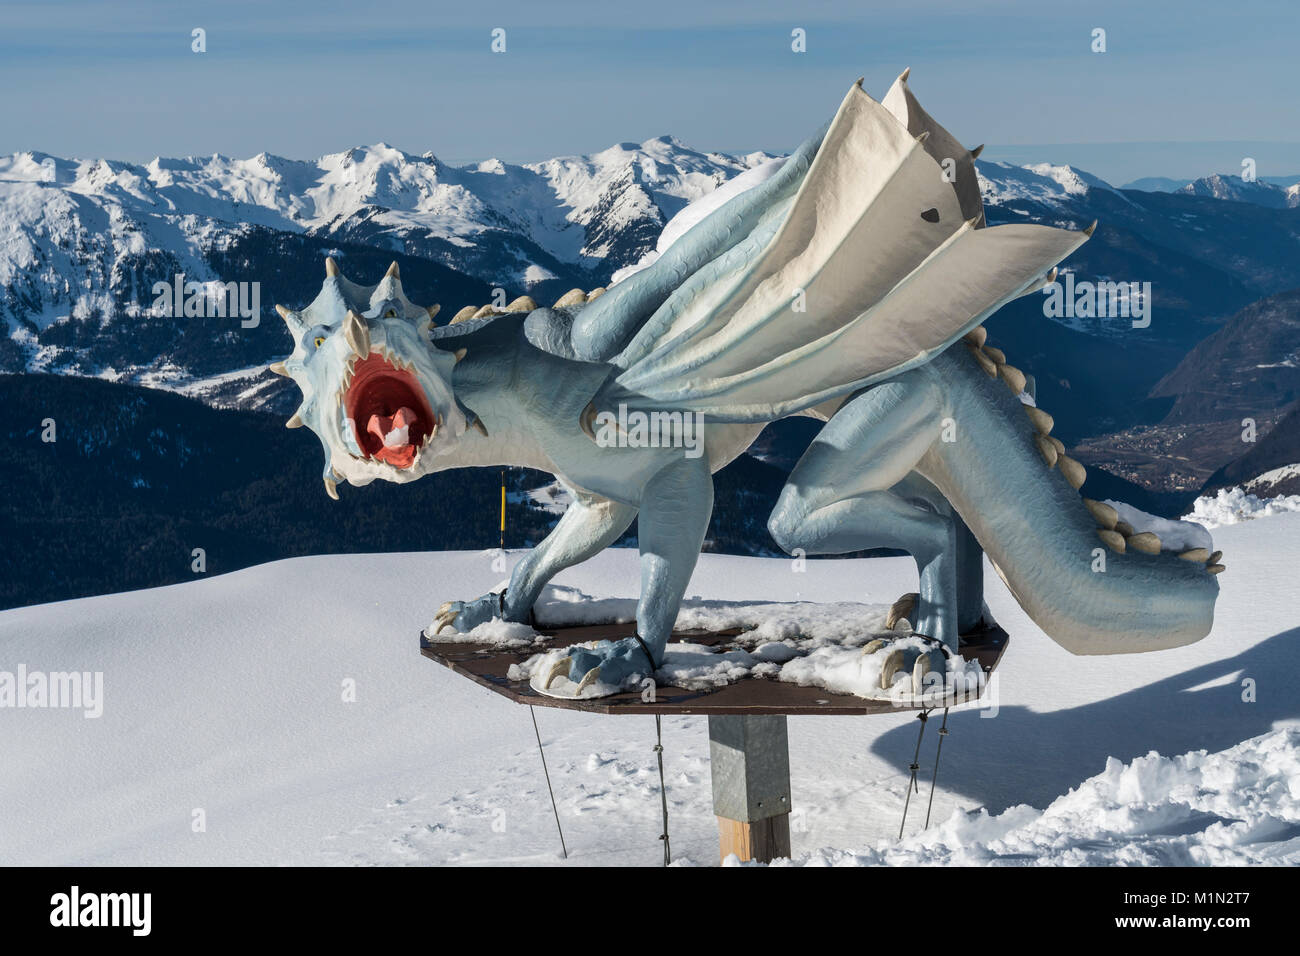 Dragon sculpture beside the Loze piste in the French ski resort of Meribel in the three valleys - Stock Image